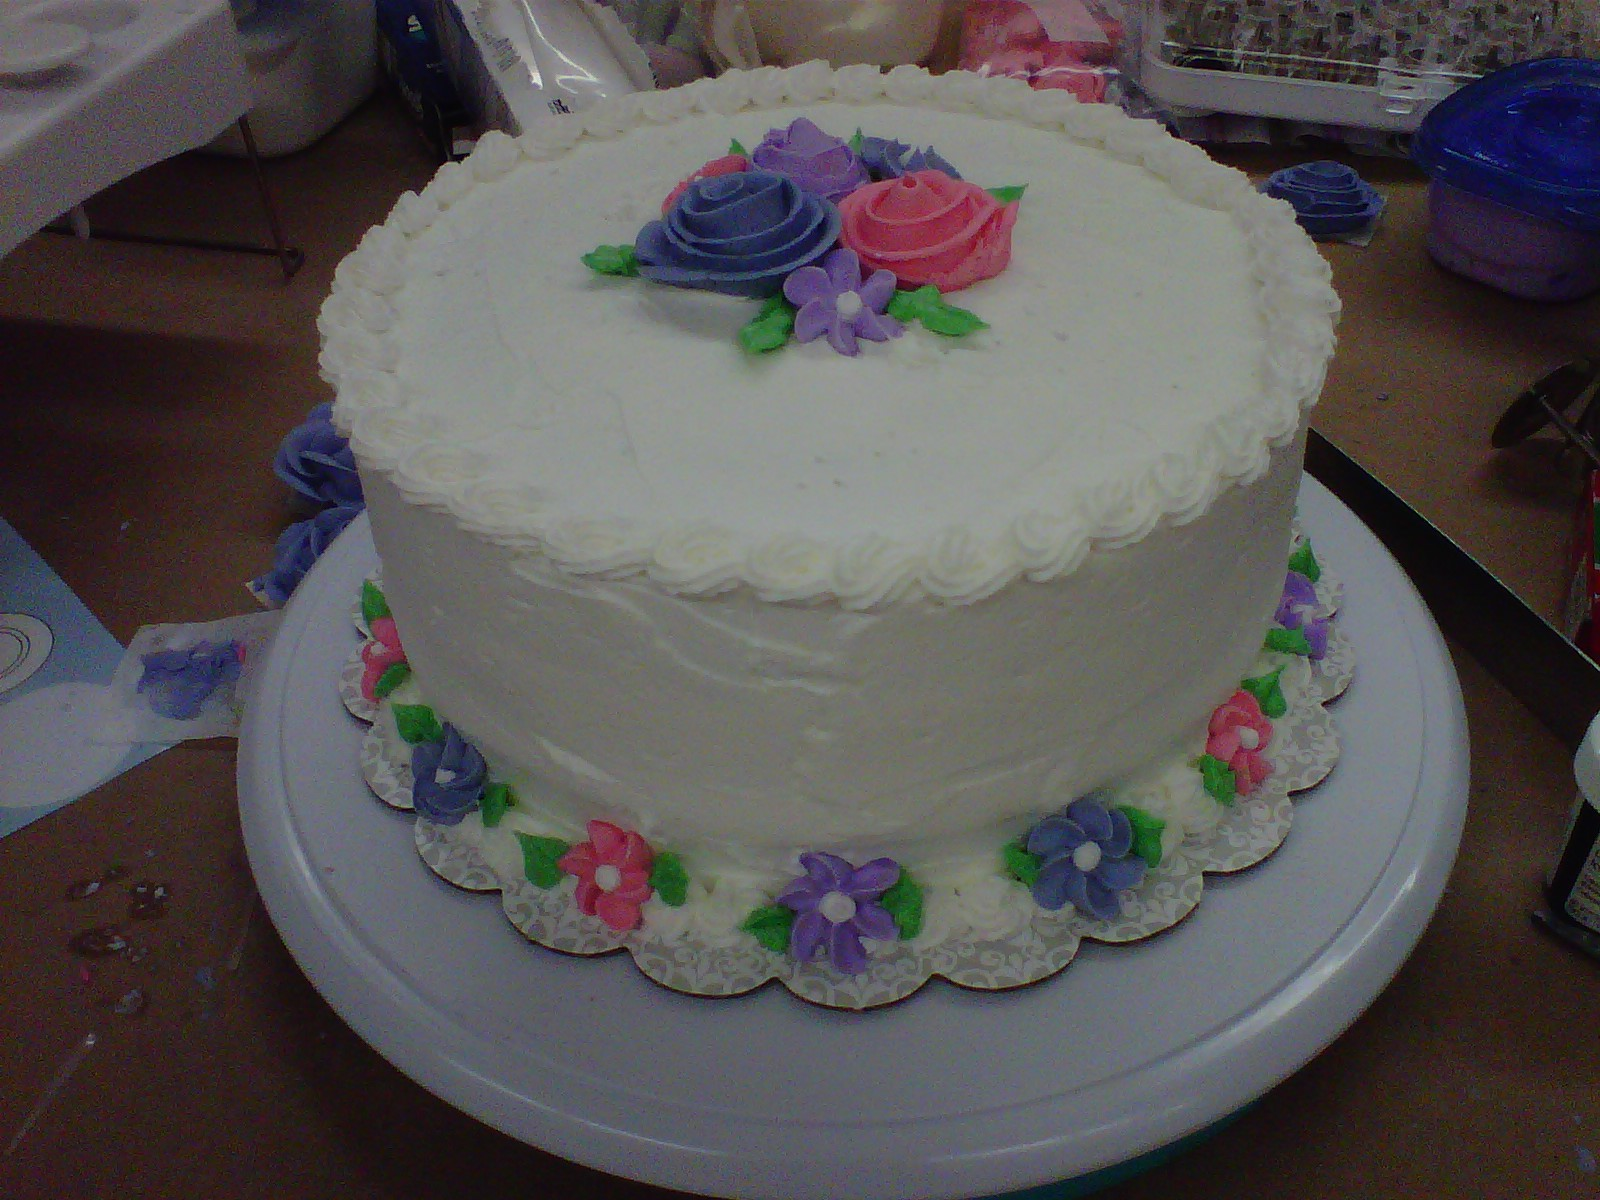 The Sweet Fairy Cake In English: To My Gradma, With Love